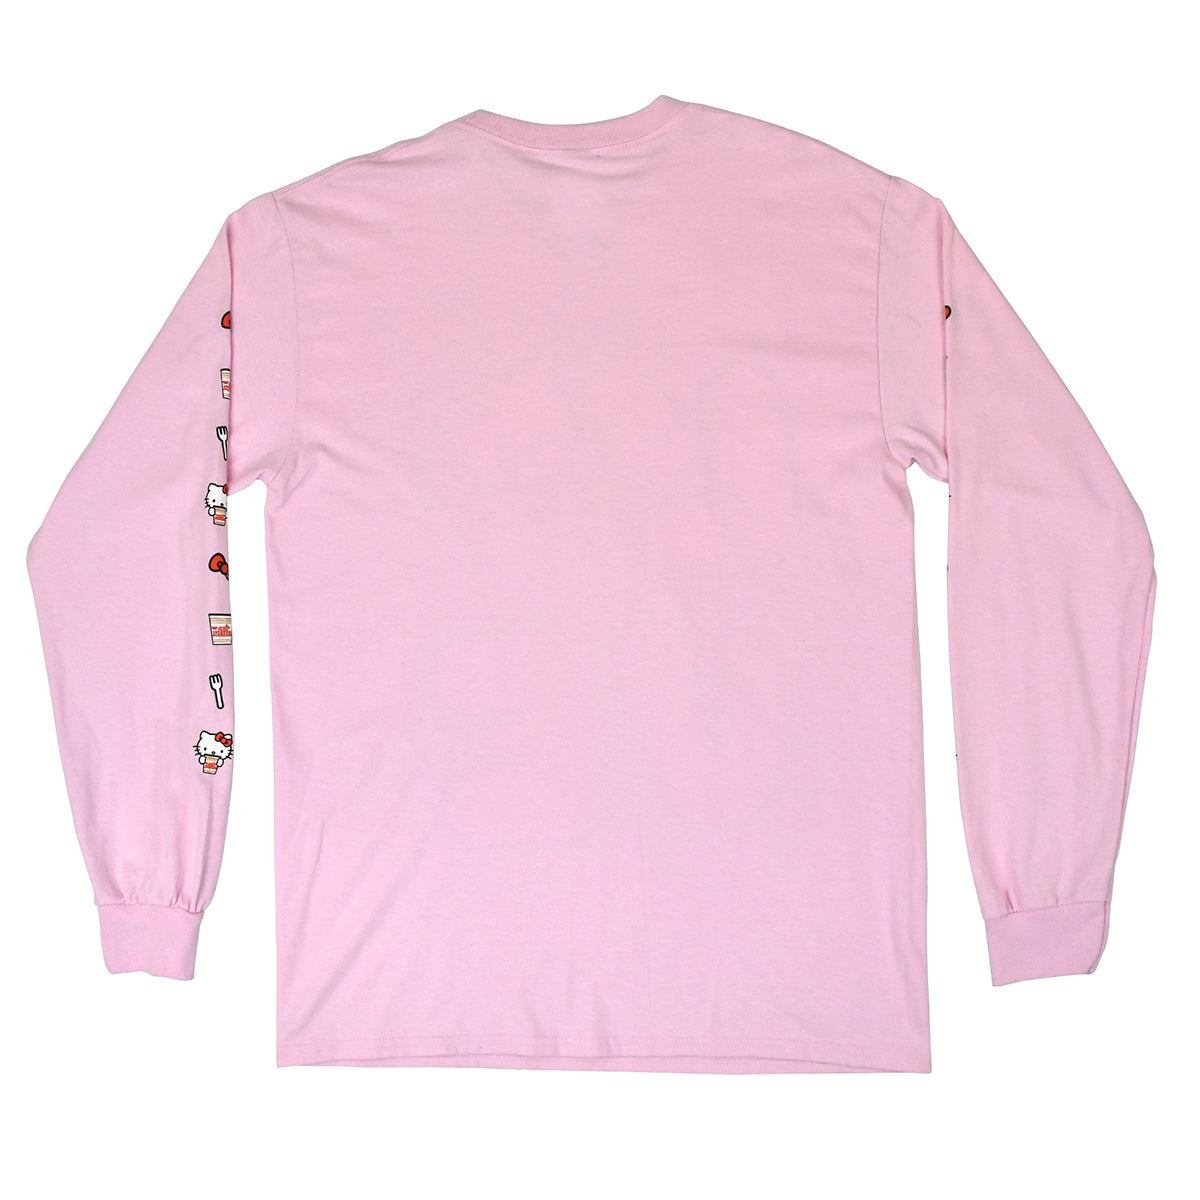 Hello Kitty x Cup Noodles Pink Love Long Sleeve T-Shirt